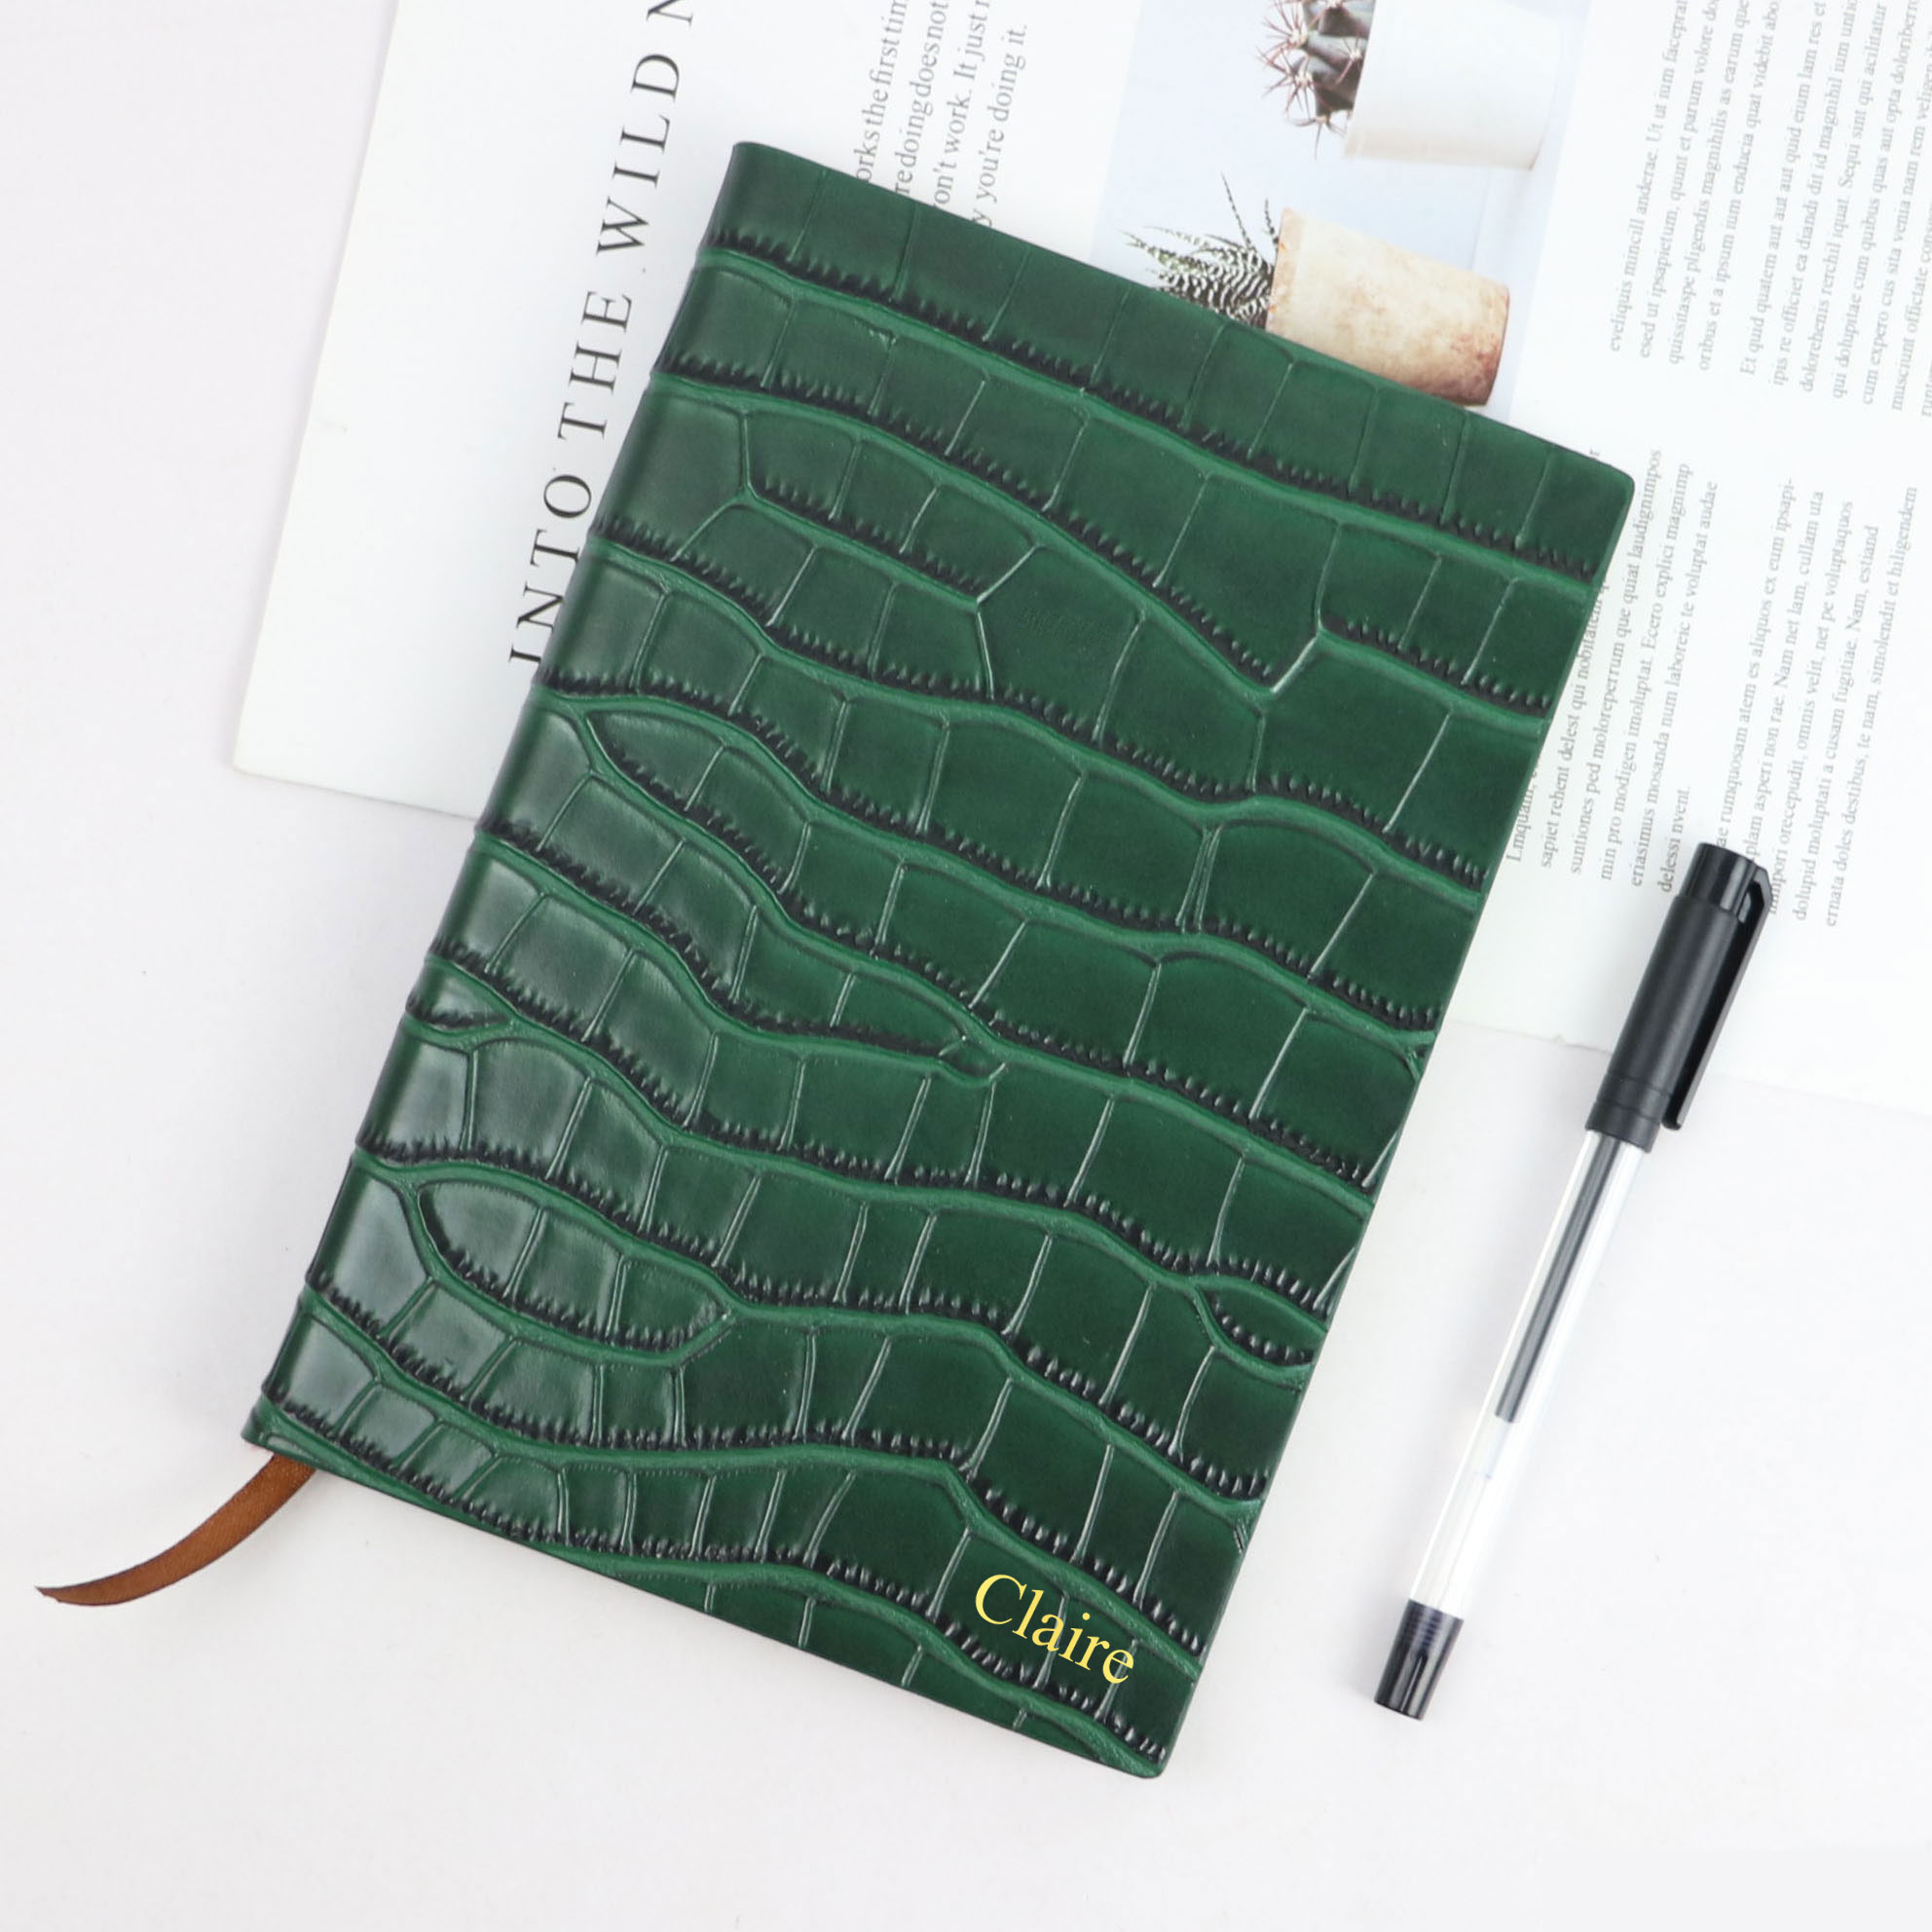 New Style A5 Notebook PU Leather Travel Hardcover Notebook Creative Stationery Crocodile Pattern Business A5 Notebook Diary